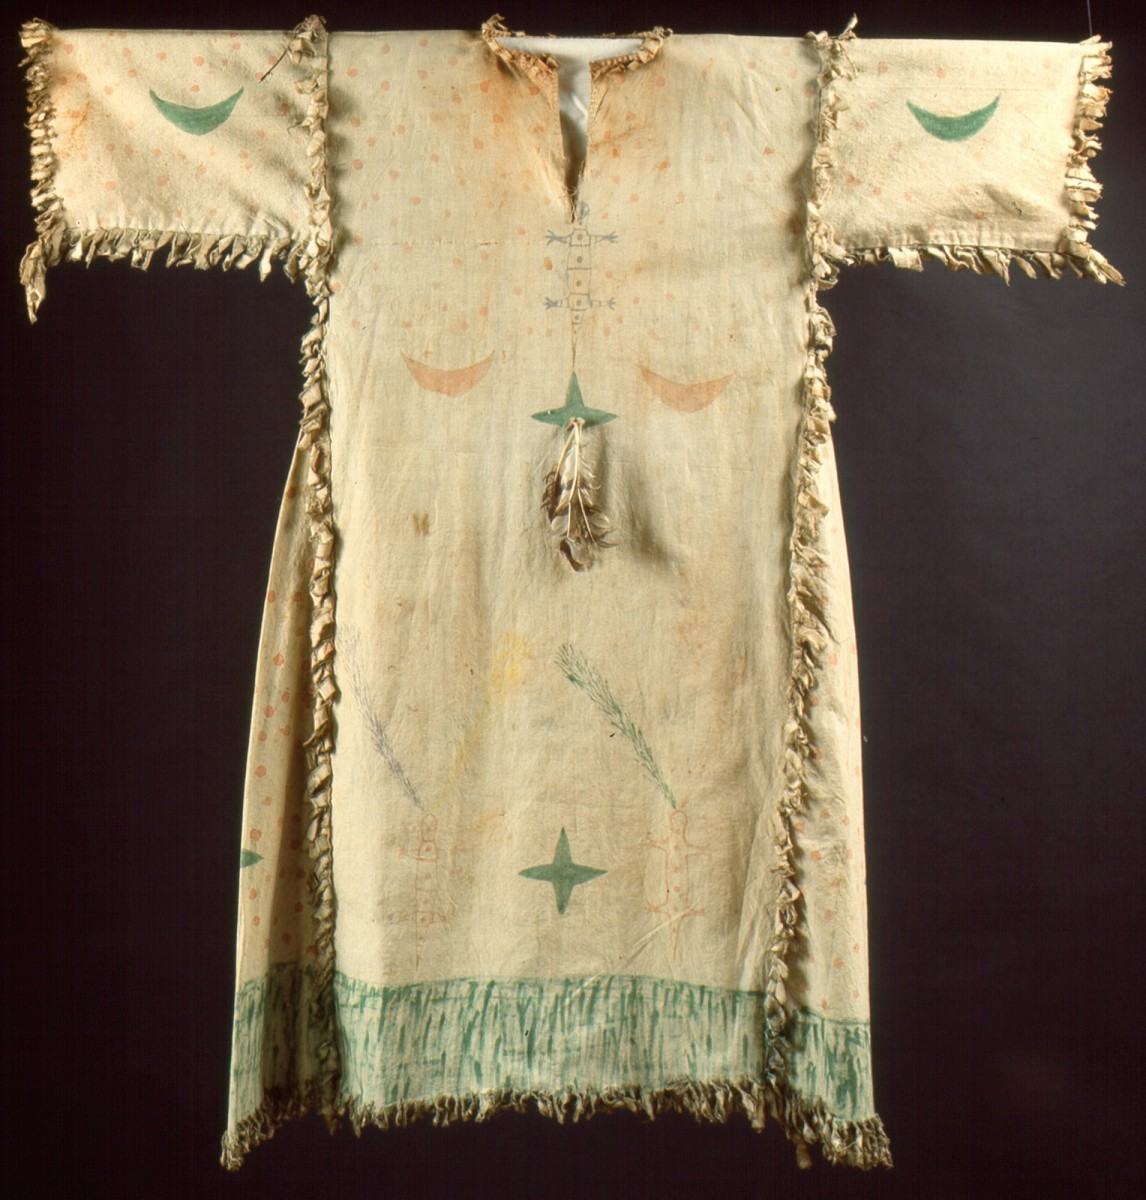 Geistertanzgewand, Lakota oder Blackfoot, Plains, USA, um 1900 Baumwolle, Federn RJM, 49690 Tausch Stolper Galleries, Amsterdam 1967 © RJM, Foto/photo: Rheinisches Bildarchiv Köln